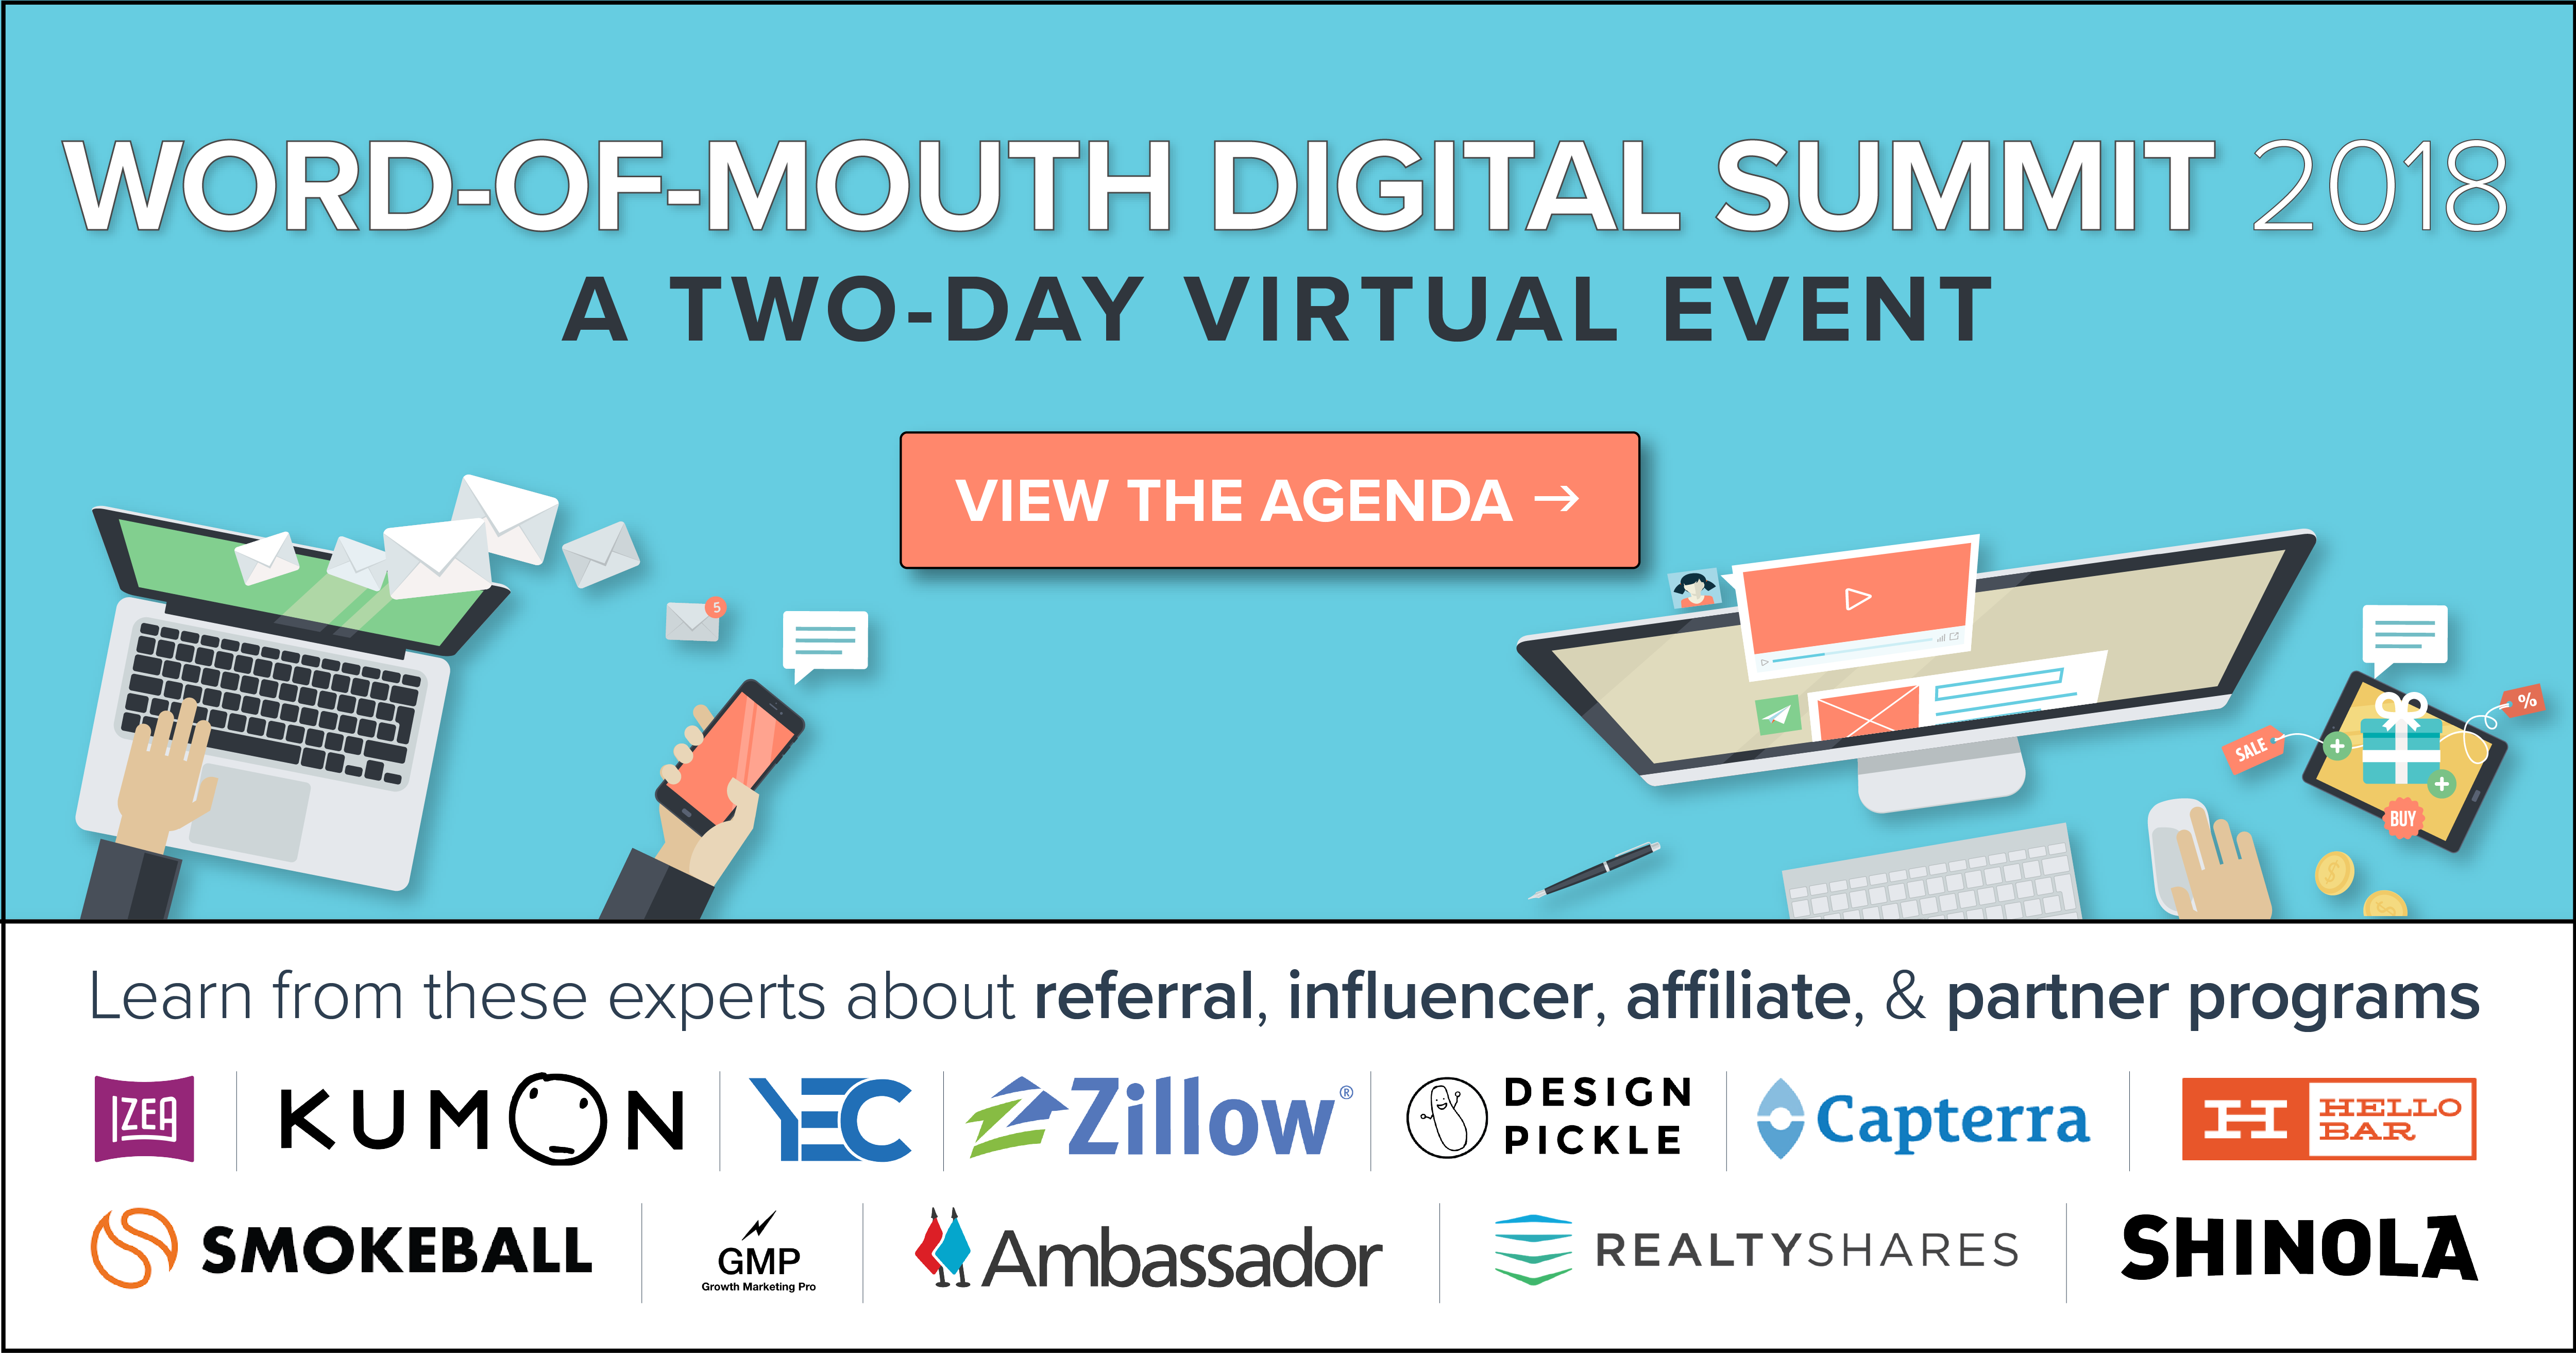 Word-of-Mouth Digital Summit Banner Image